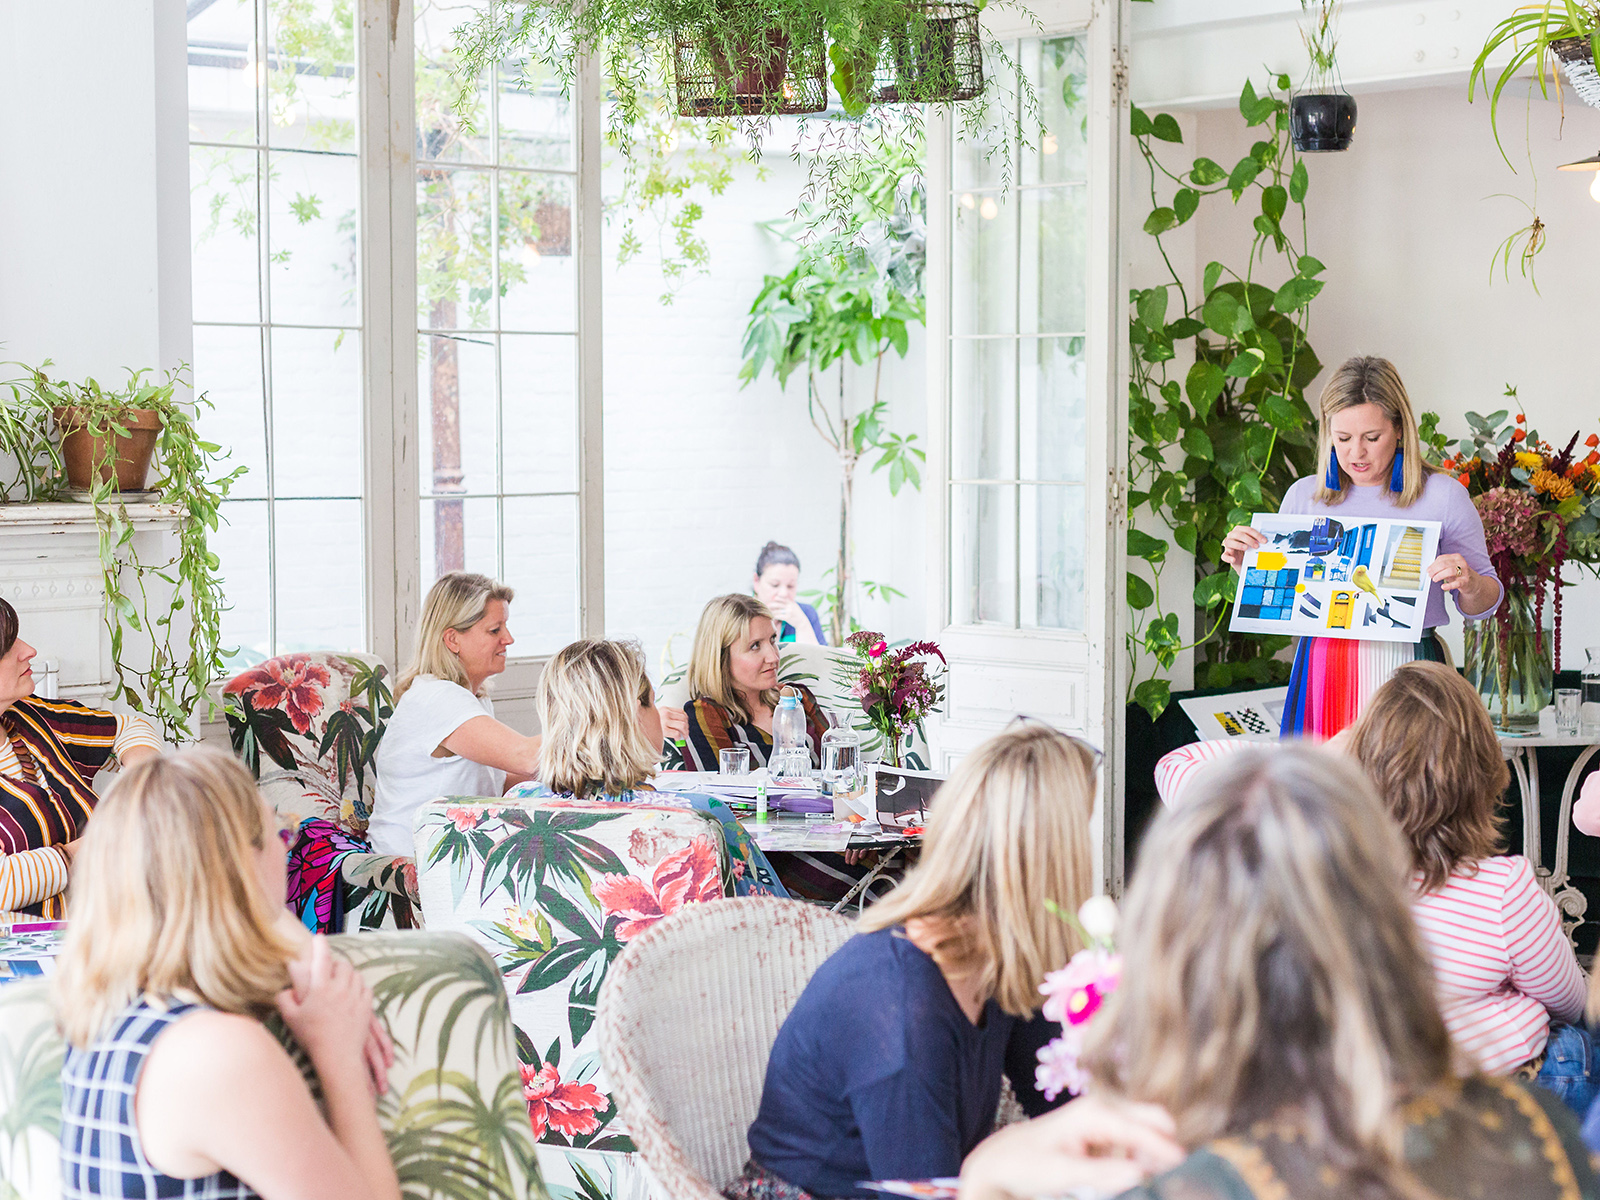 Interior designer sophie robinson jhosts her ban the beige colour workshop to empower people to colour scheme their homes like a queen